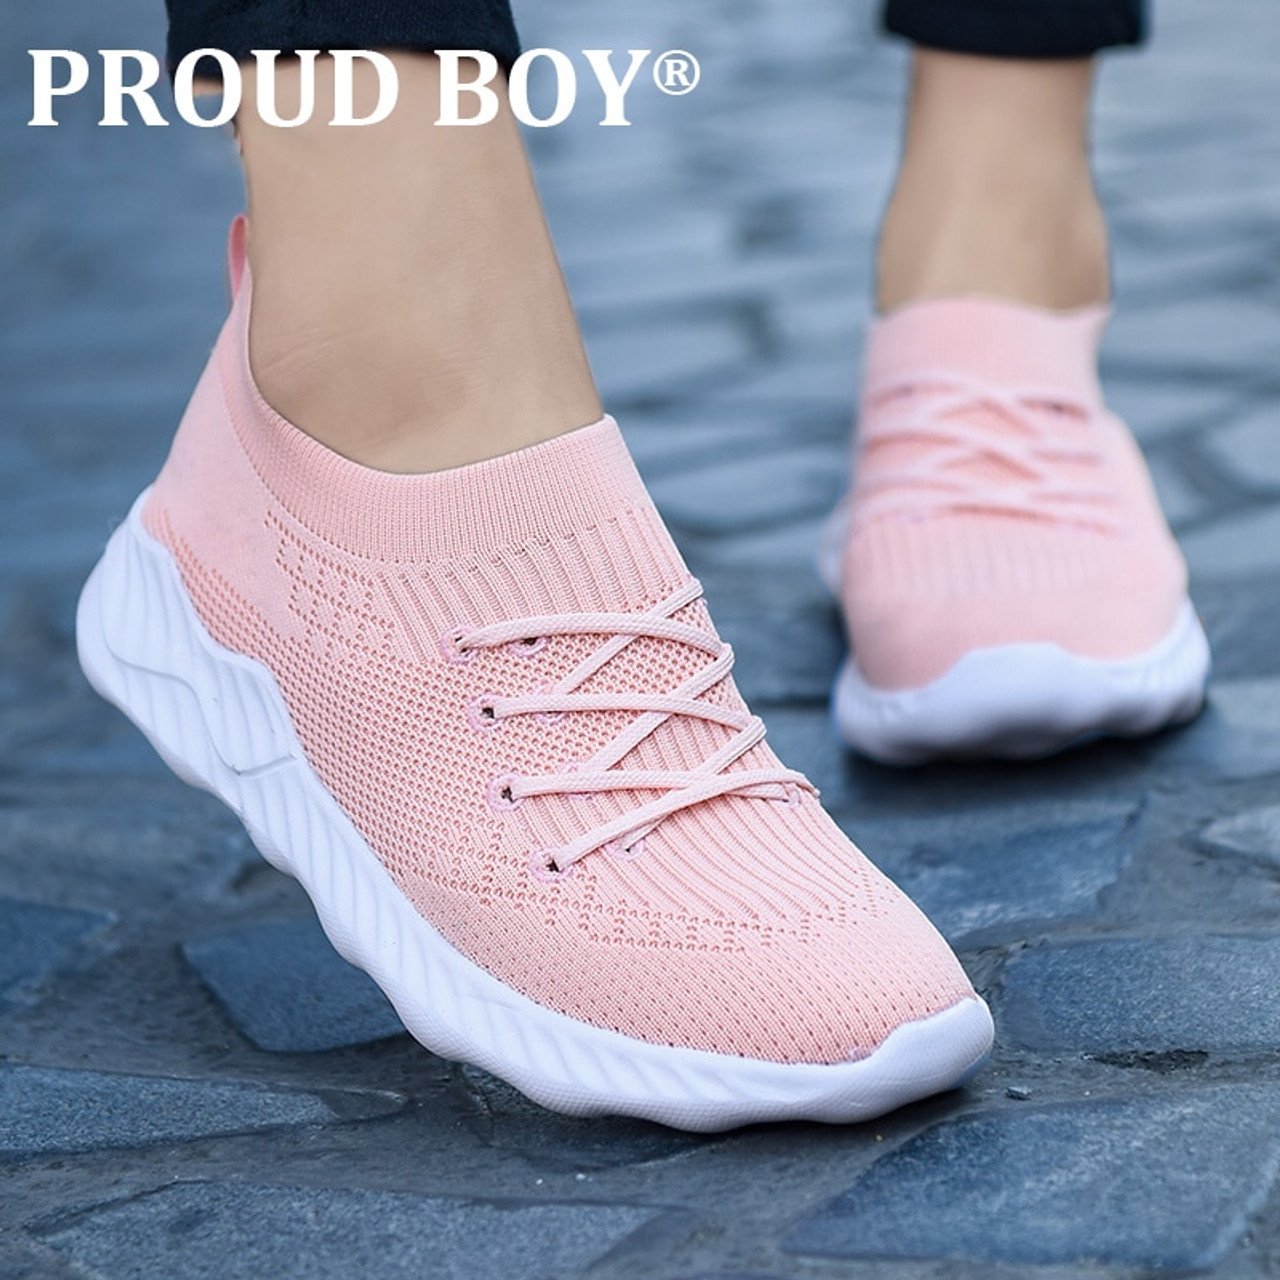 new design running shoes for women slip on Comfortable Mesh Sport shoes Outdoor Walking Jogging Socks sneakers Cushioned Sole